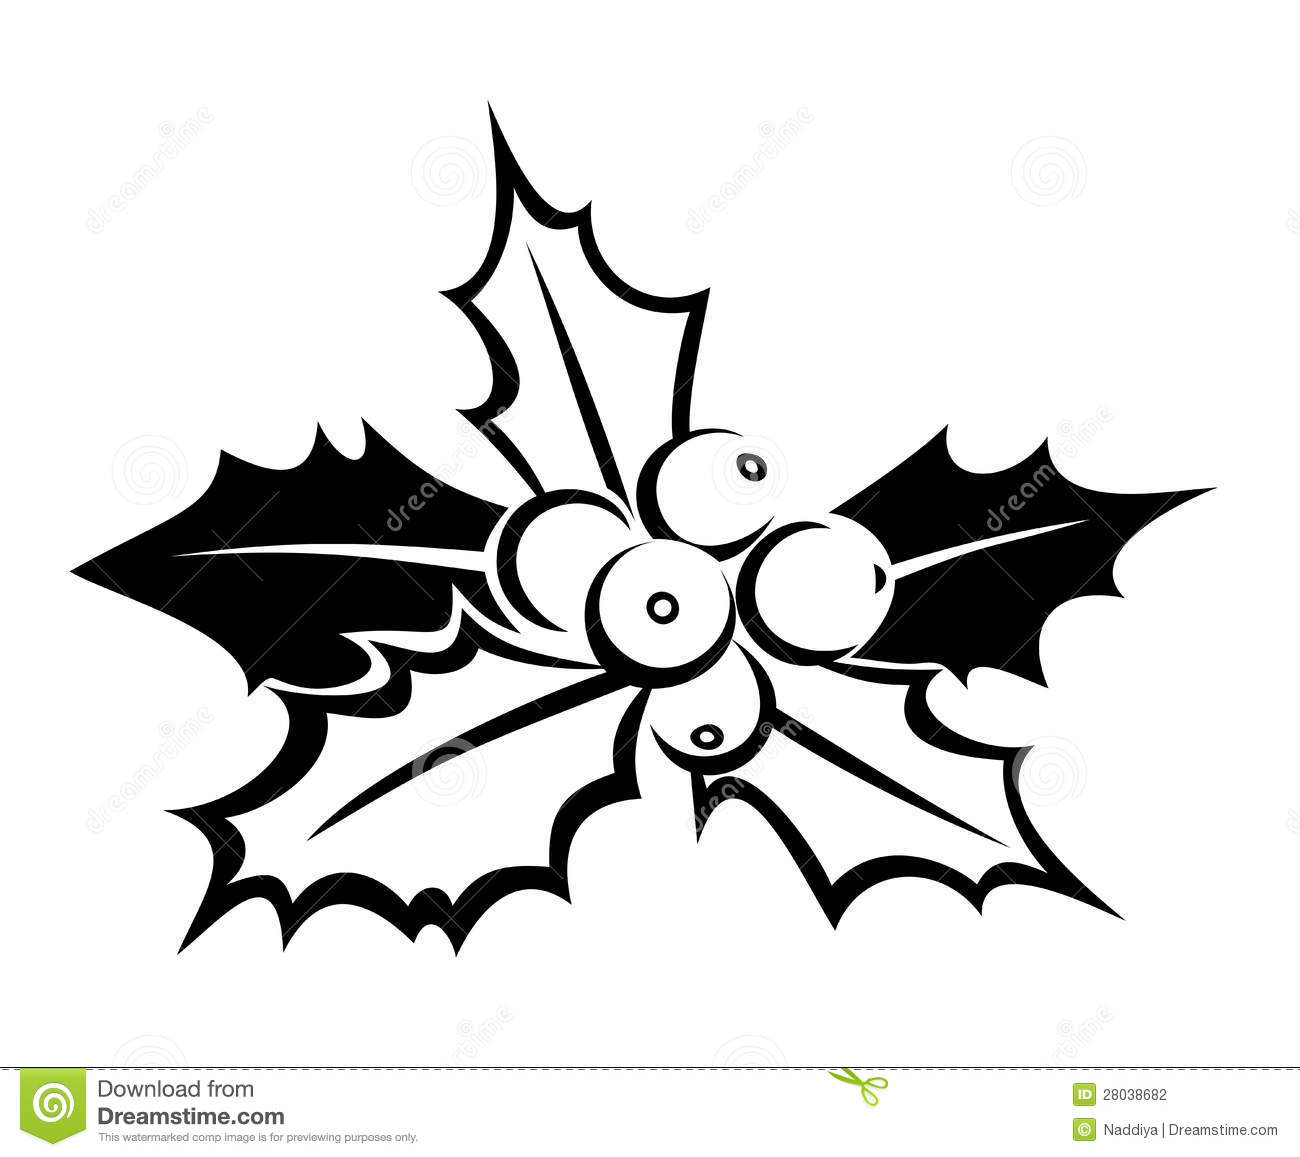 Black Silhouette Of Holly. Vector Illustration. Stock Vector.